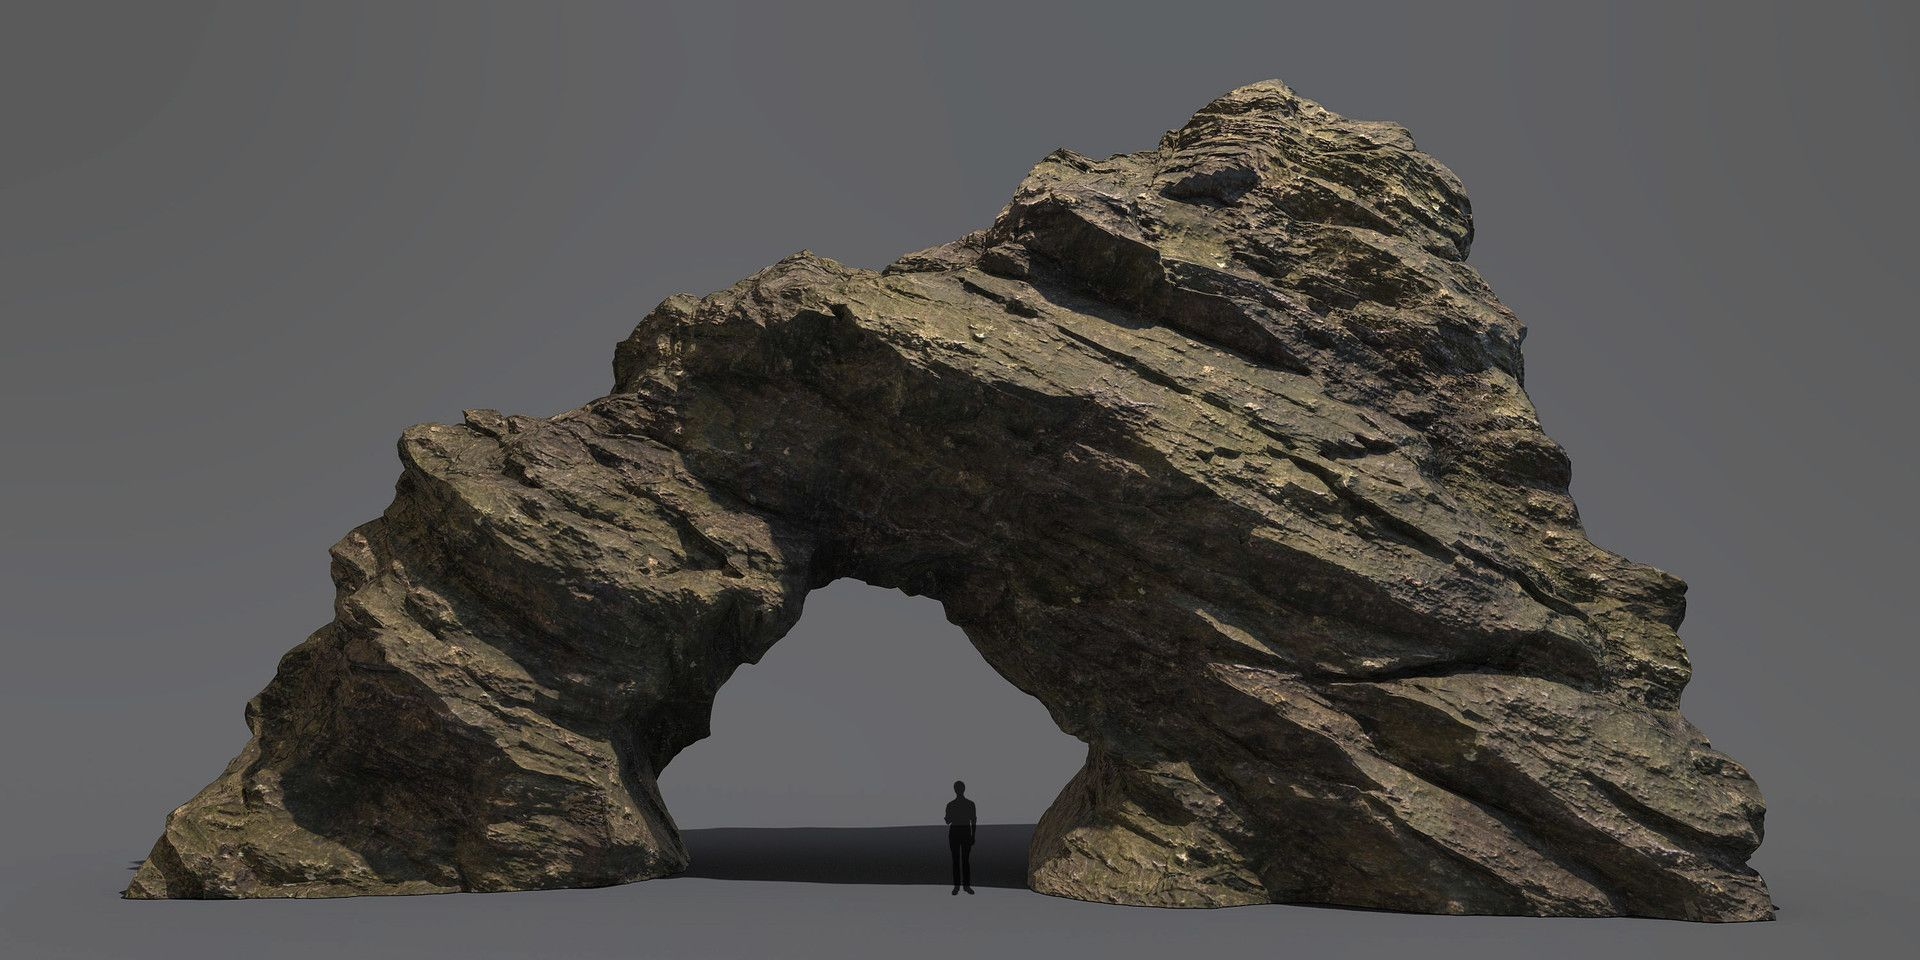 A rock arch sculpted in zbrush and textured in substance